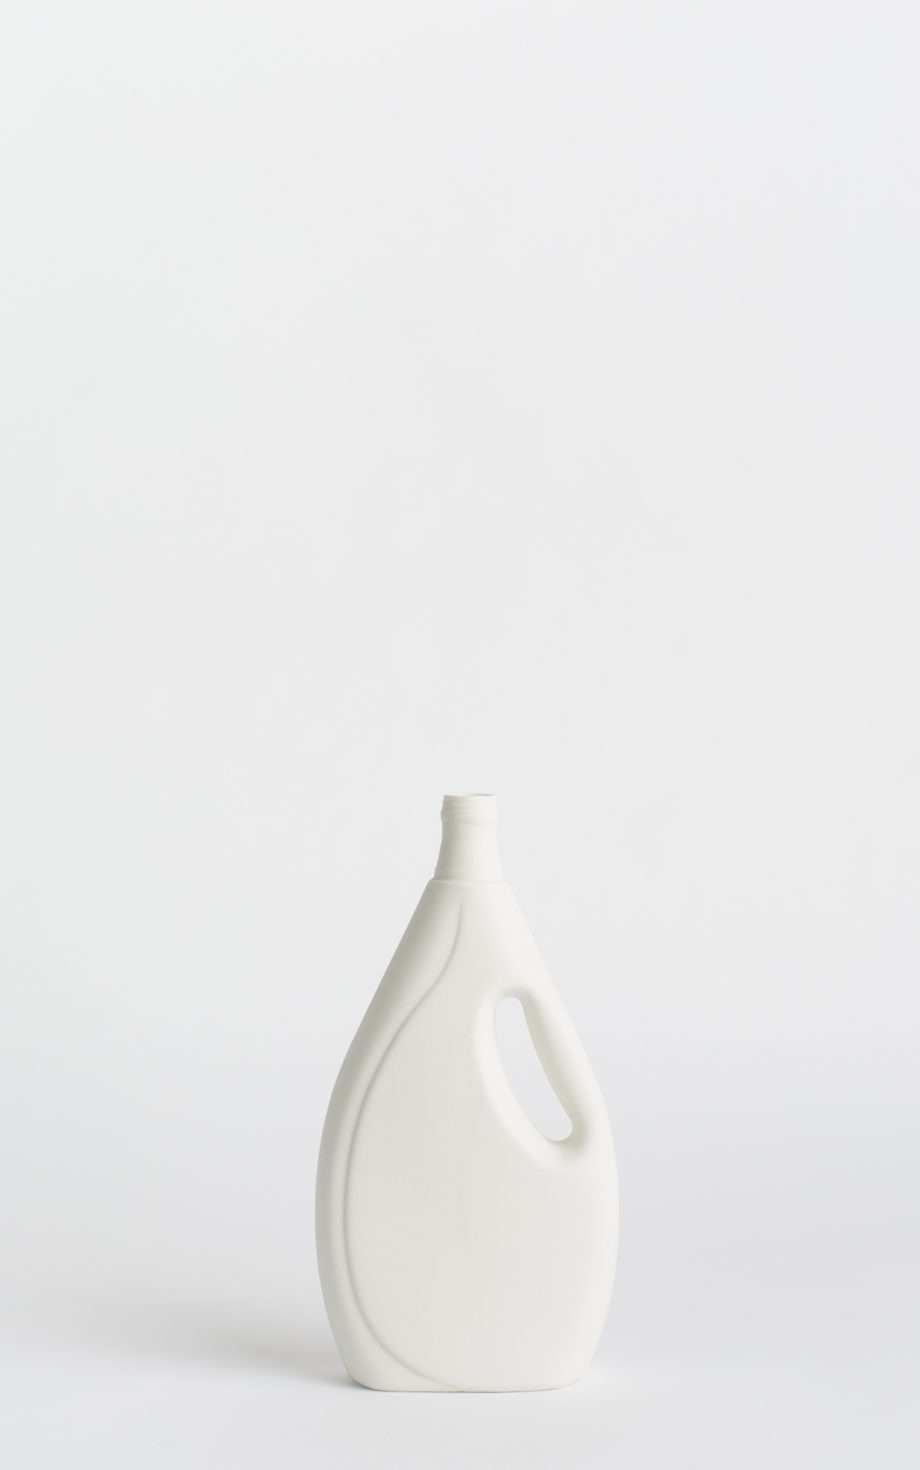 bottle vase #7 white